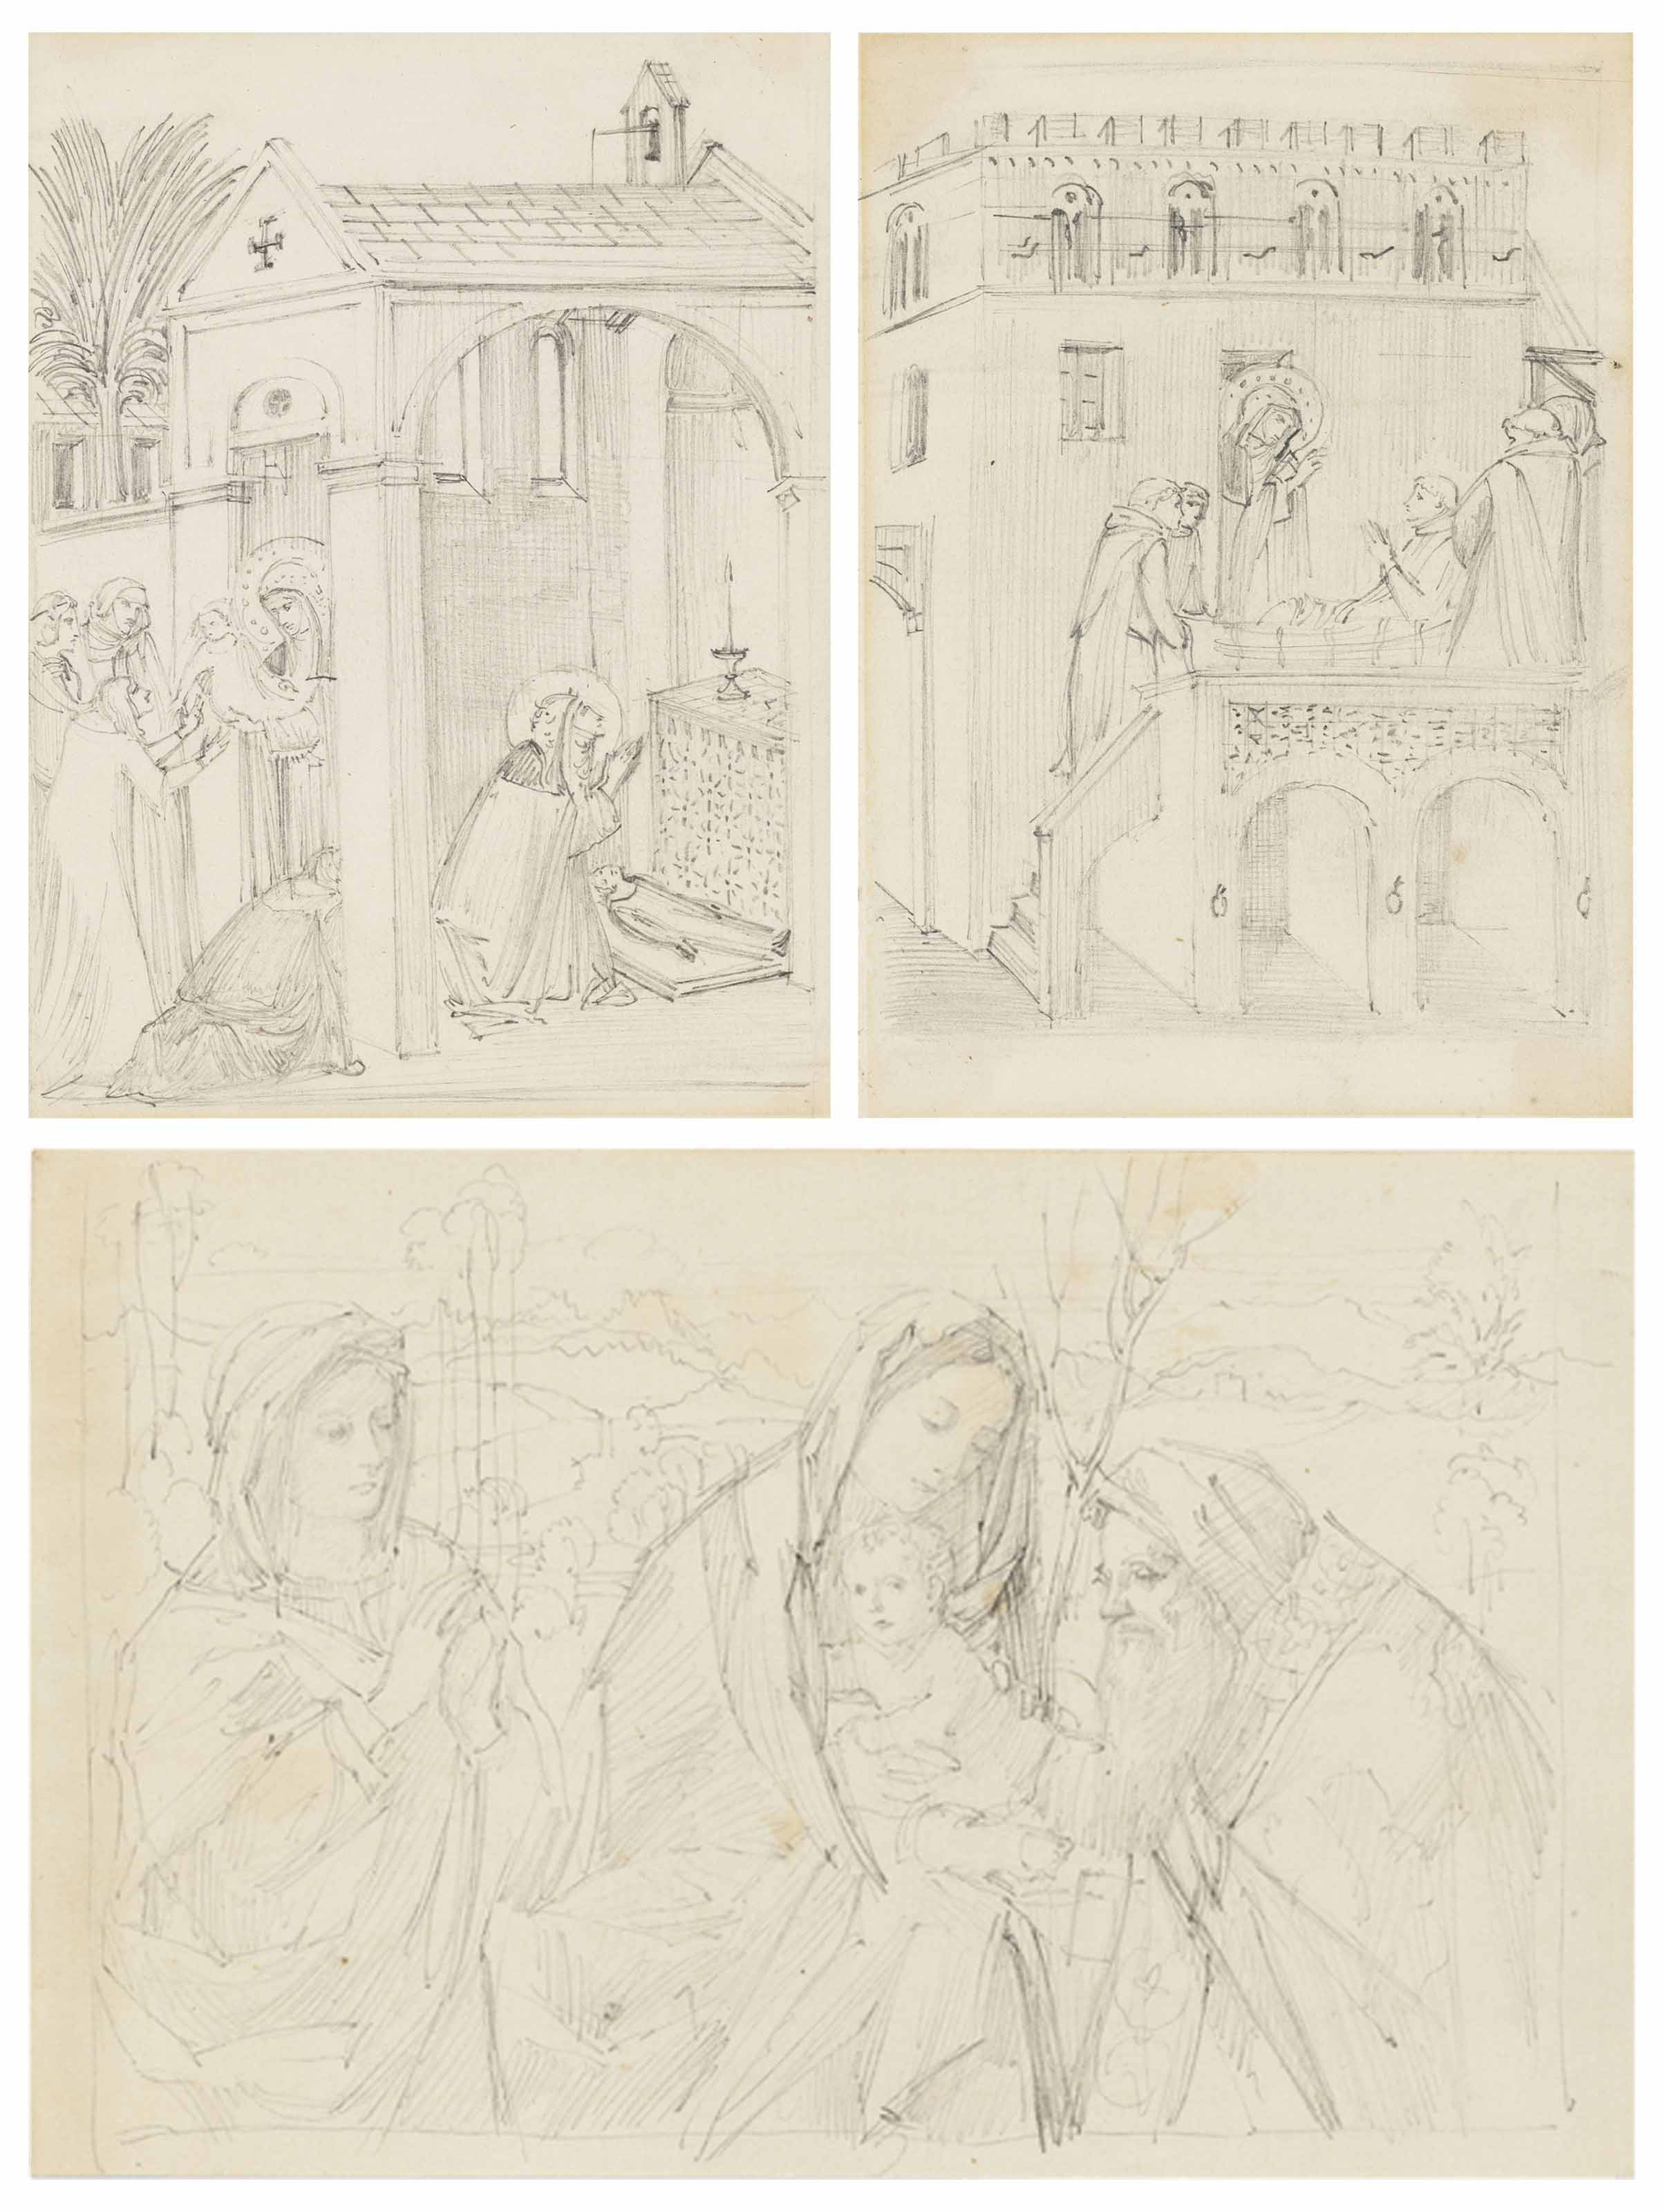 A collection of studies after Old Masters, including Piero della Francesca, Antonella da Messina, Hans Memling, Ambrogio Lorenzetti and others